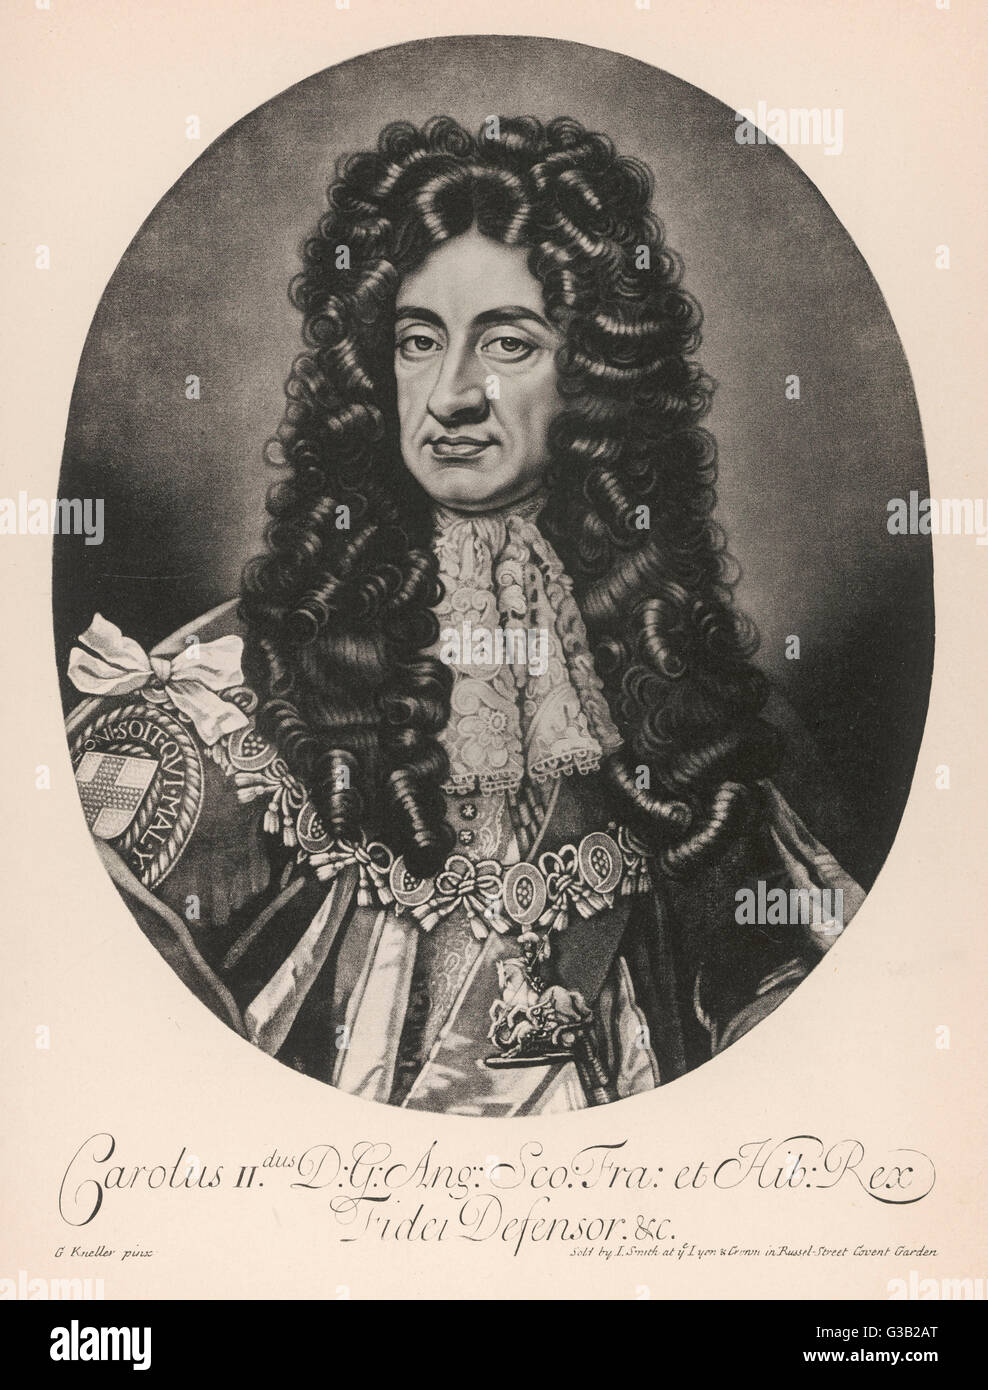 CHARLES II  reigned 1660-85        Date: 1630 - 1685 - Stock Image